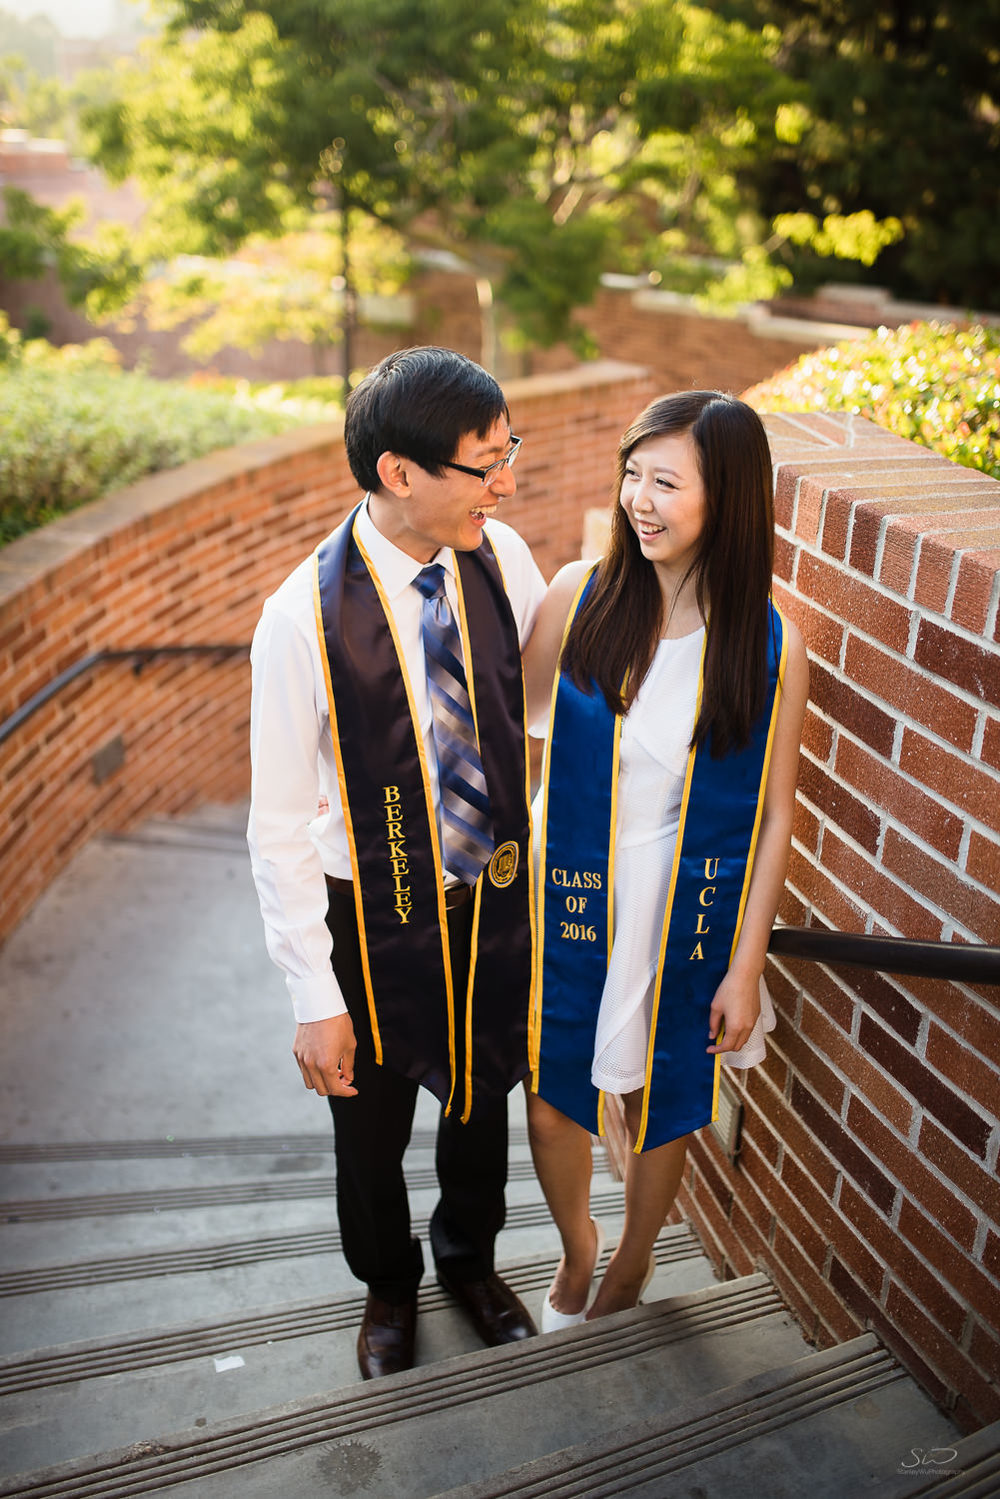 ucla-uc-berkeley-couple-grad-3.jpg